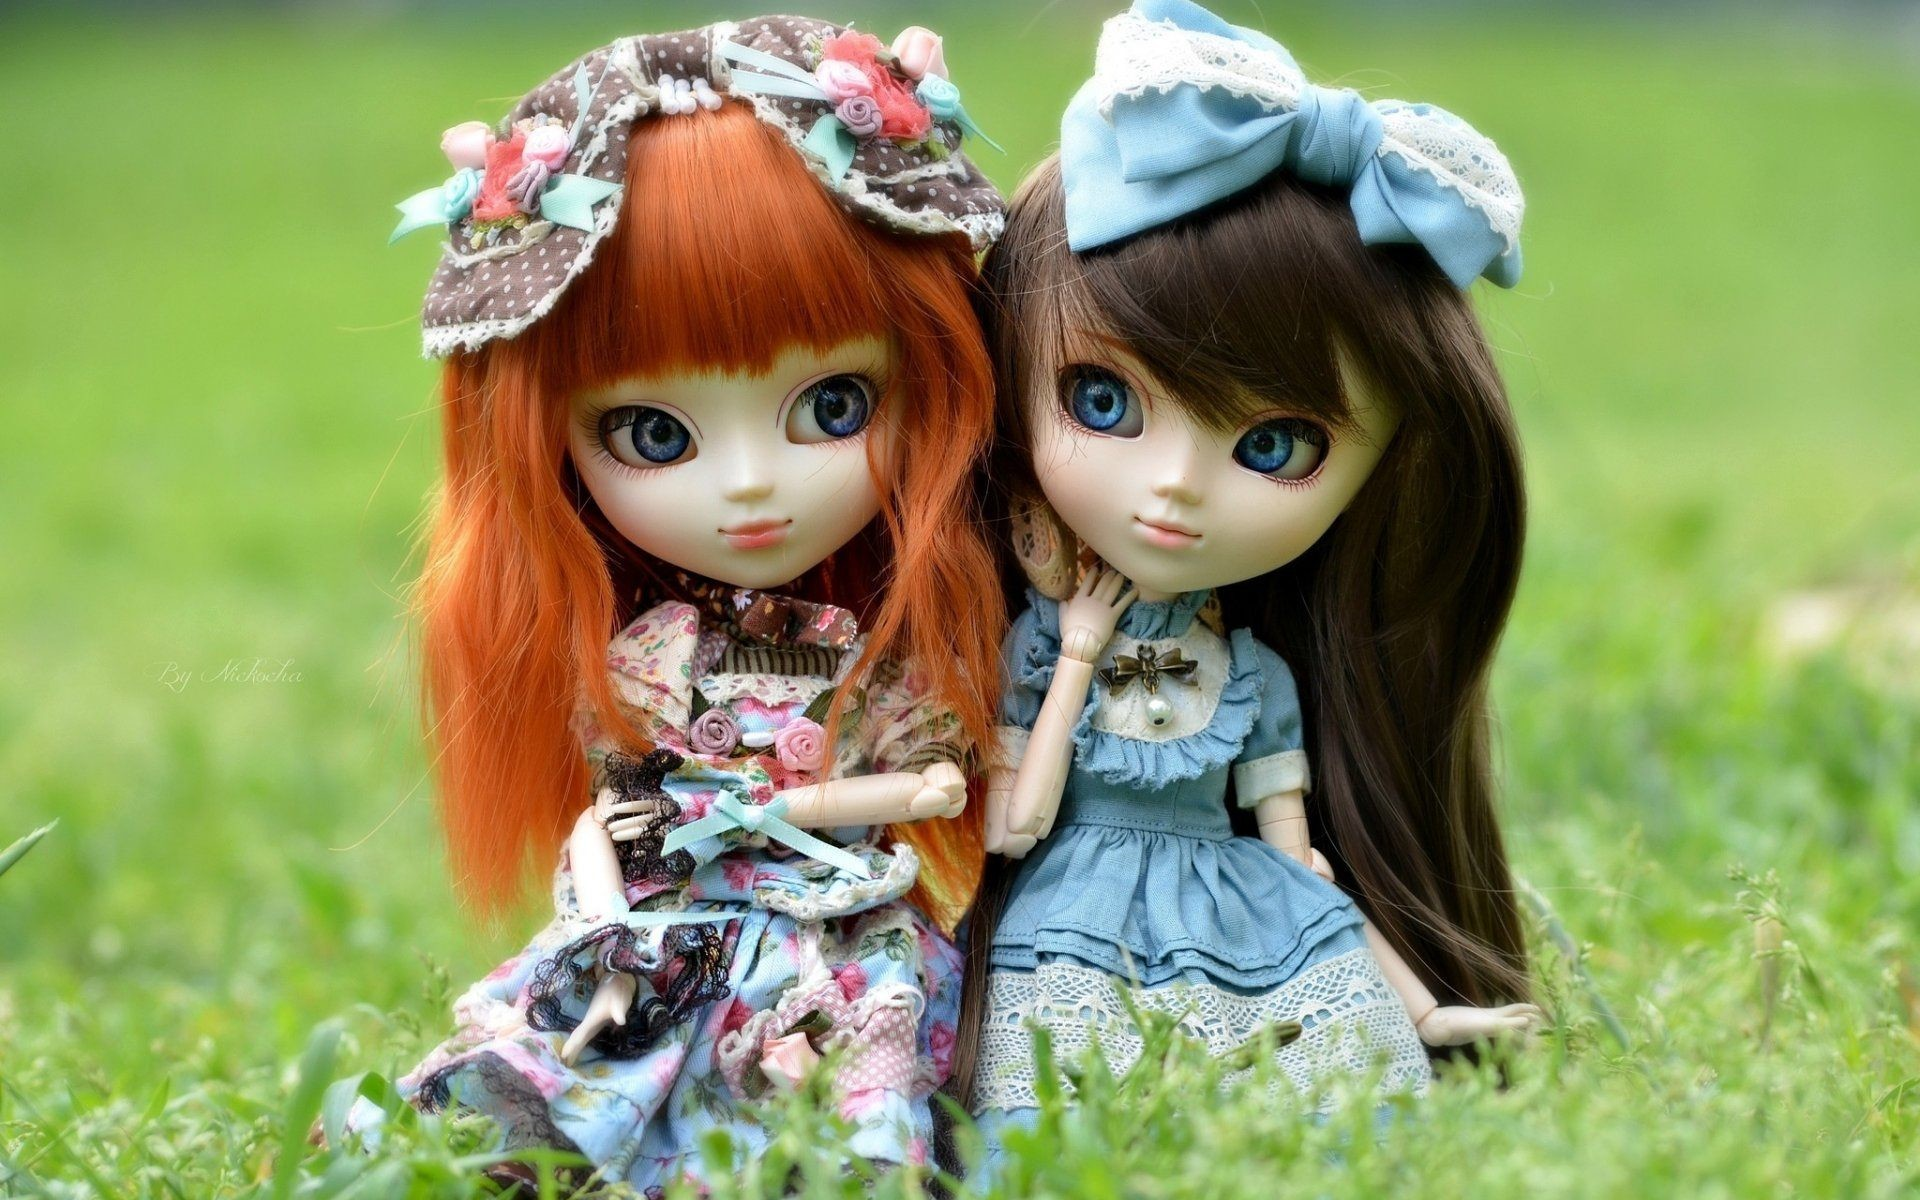 Cute Baby Dolls Wallpapers – Cutes Baby | Epic Car Wallpapers | Pinterest |  Car wallpapers and Wallpaper